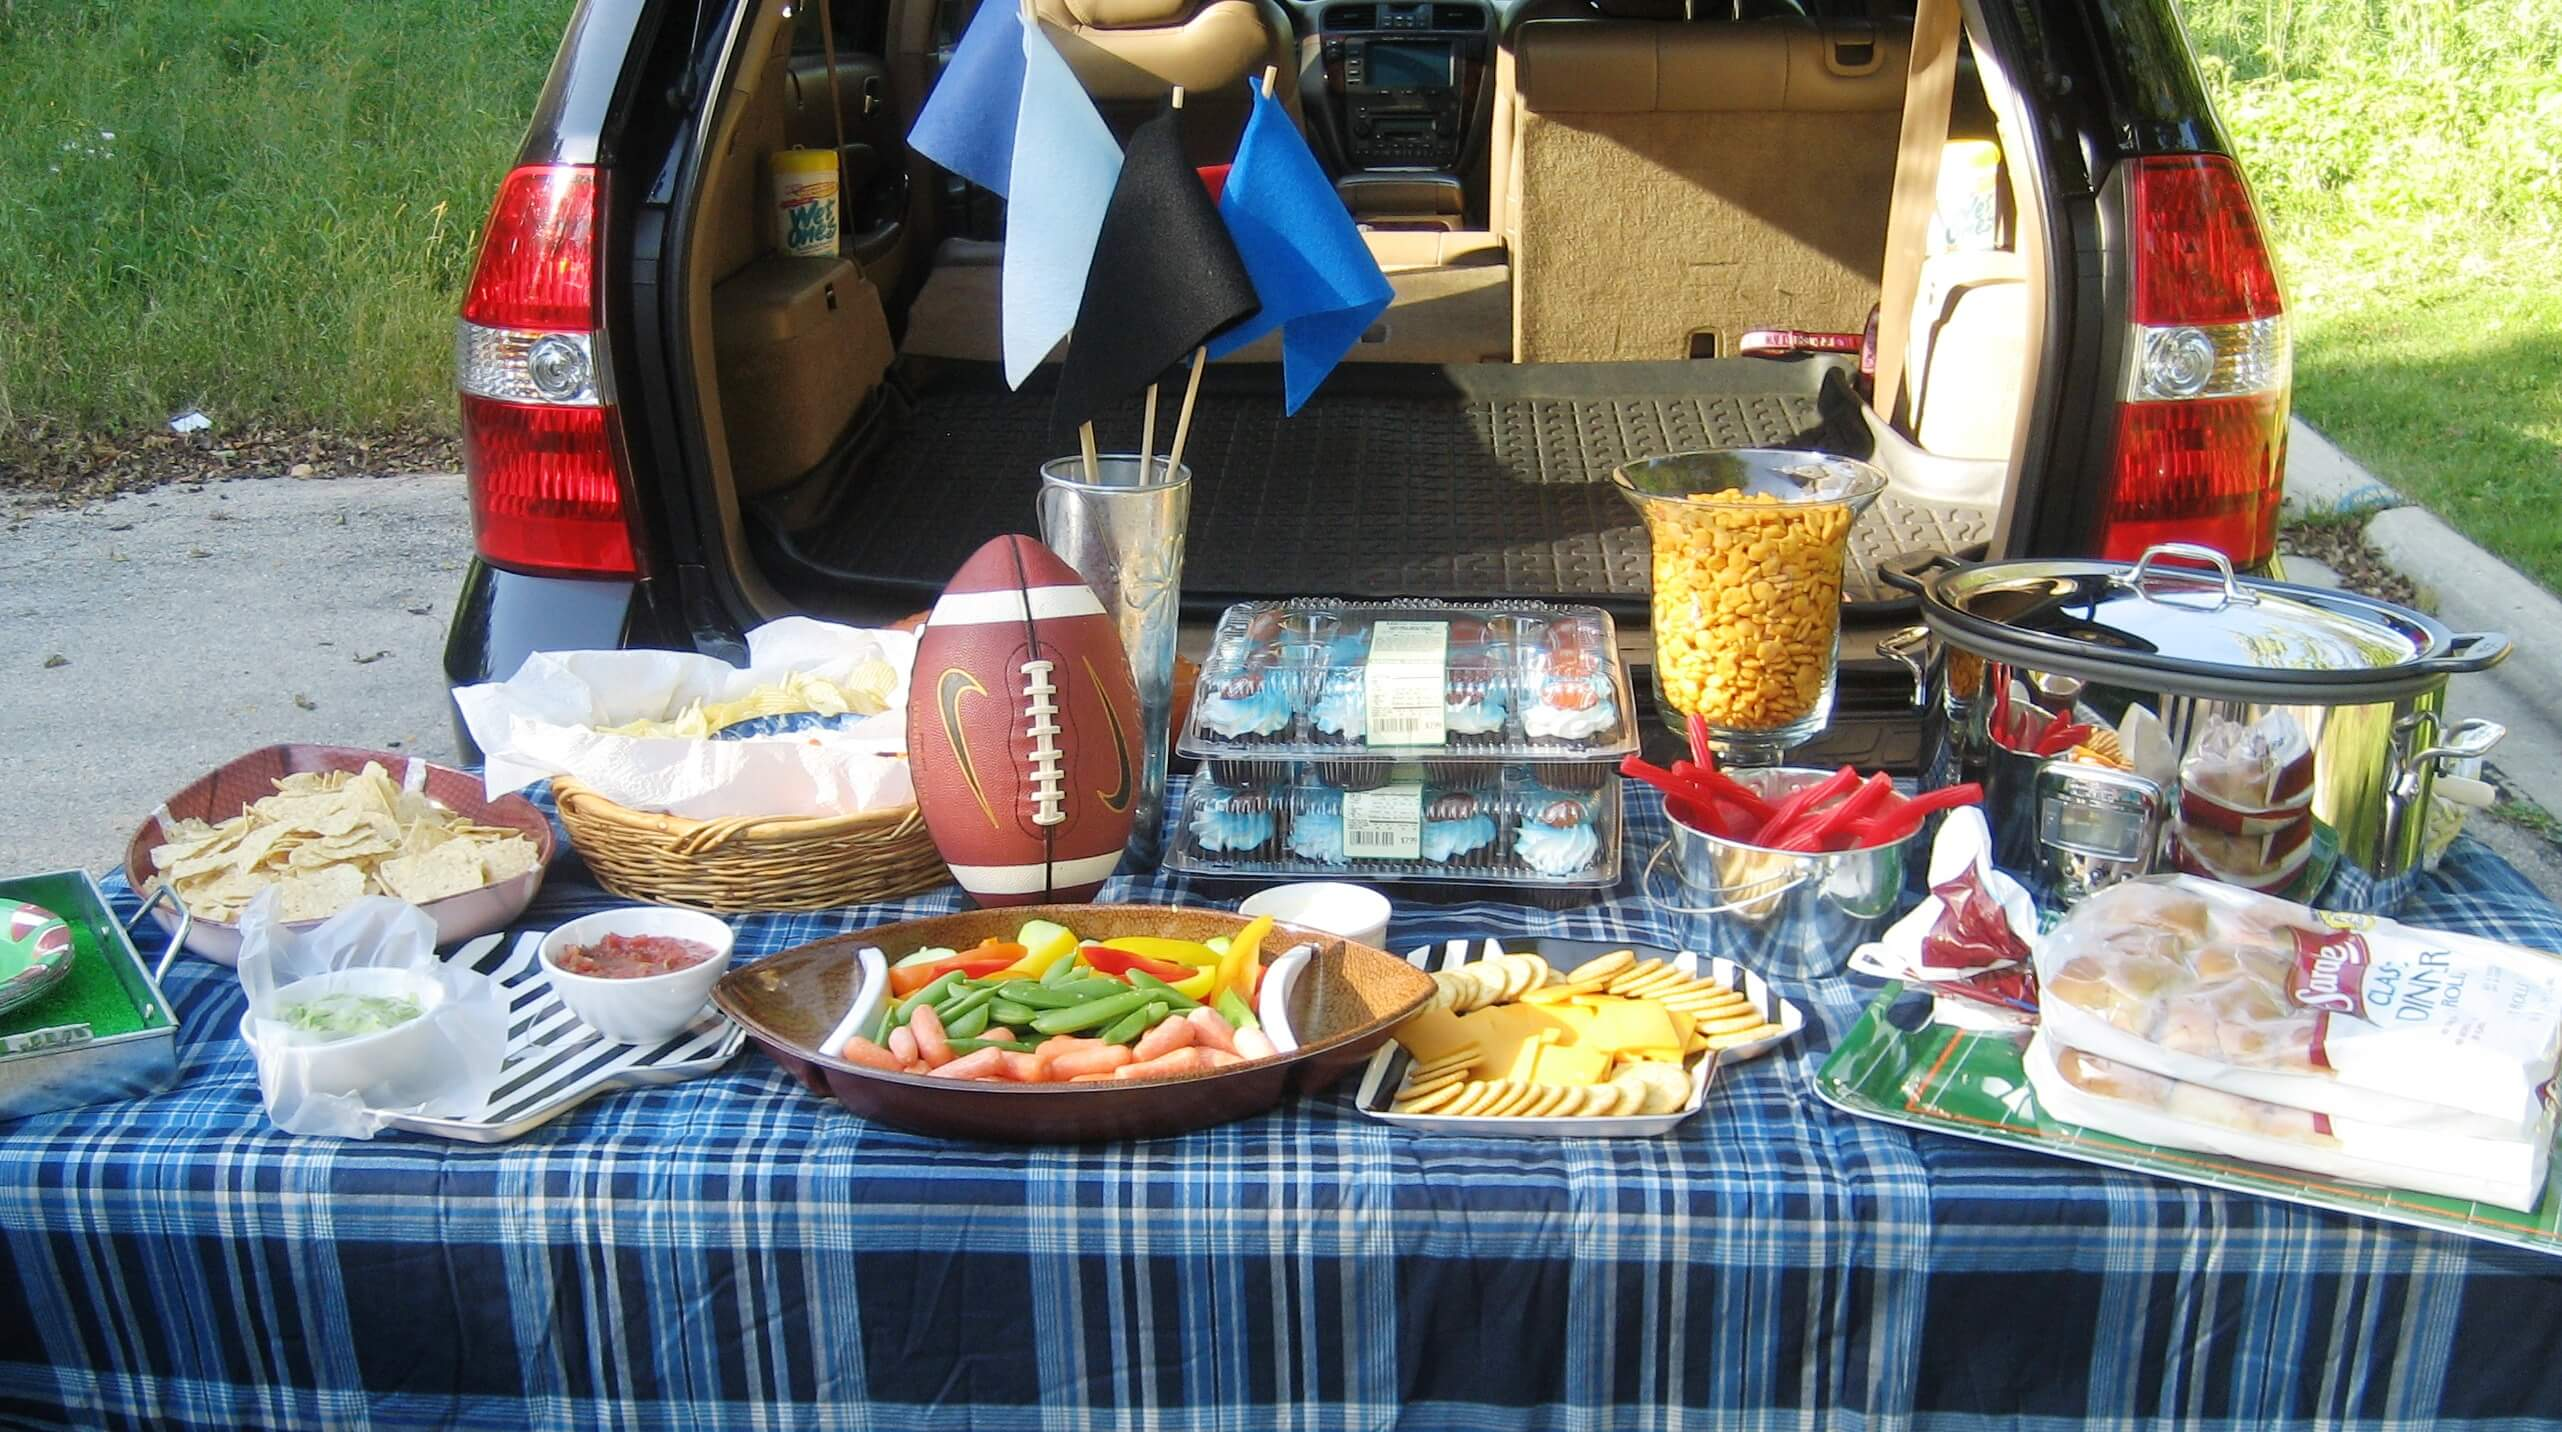 a tailgate of food such as cheese and veggies